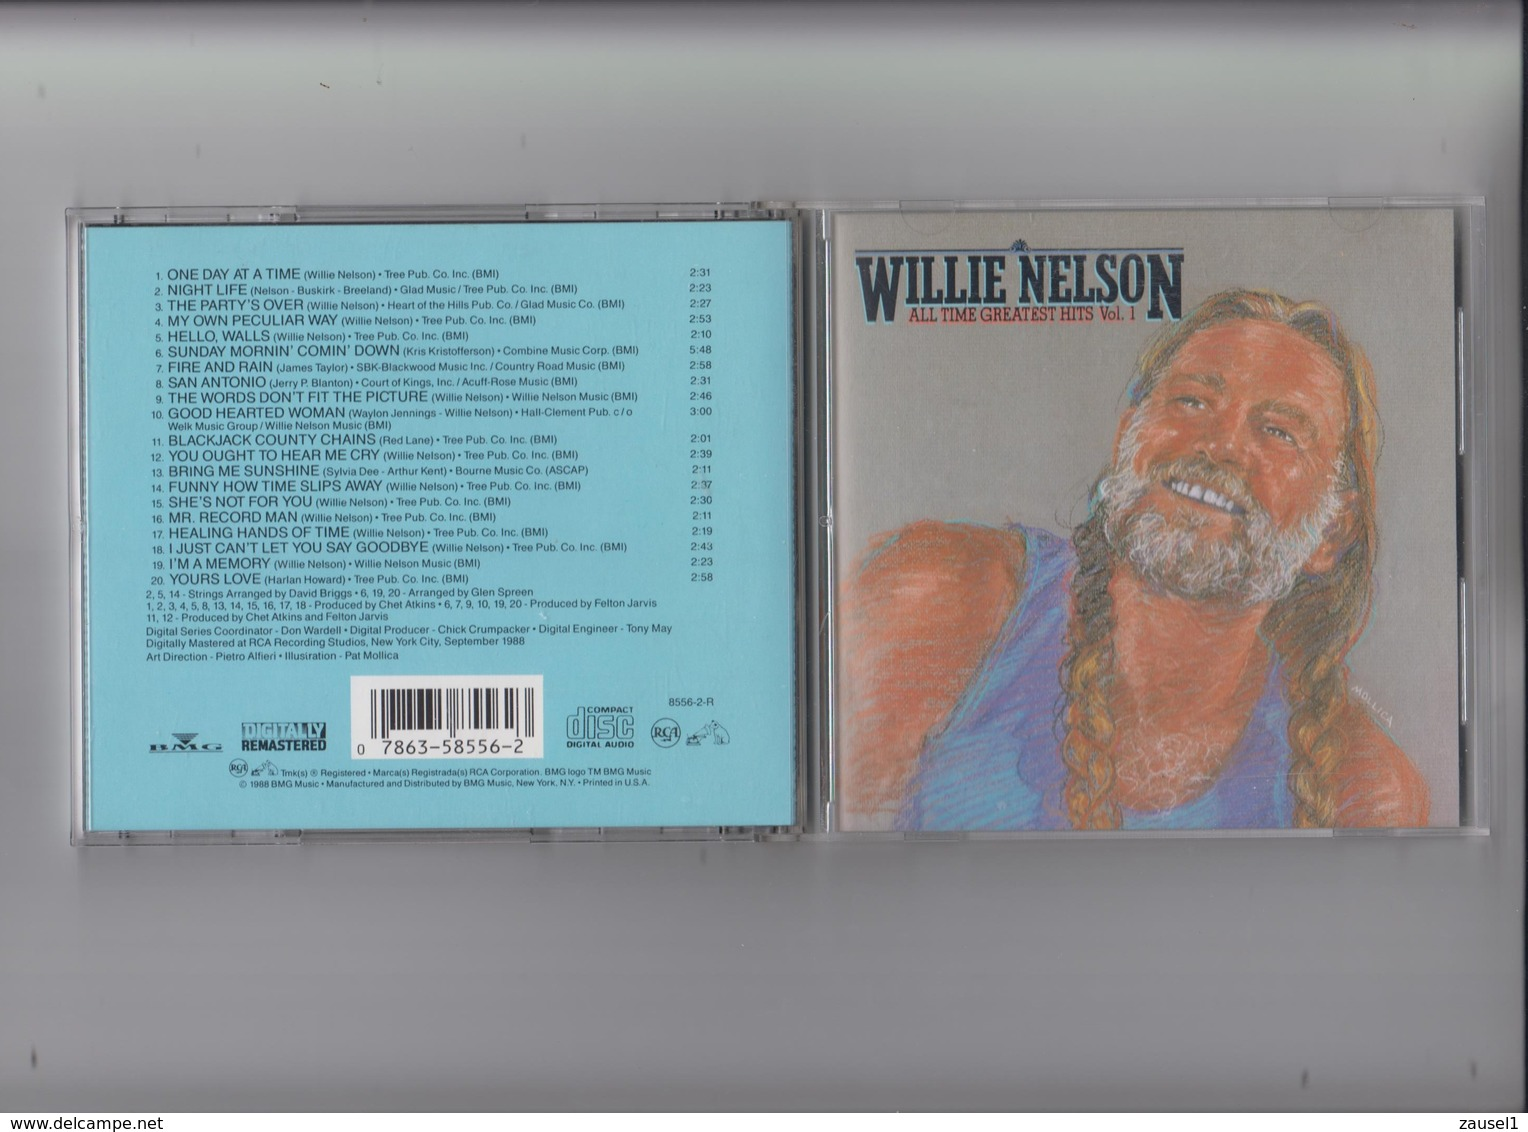 Willie Nelson - All Time Greatest Hits Vol 1- Original CD - Country & Folk